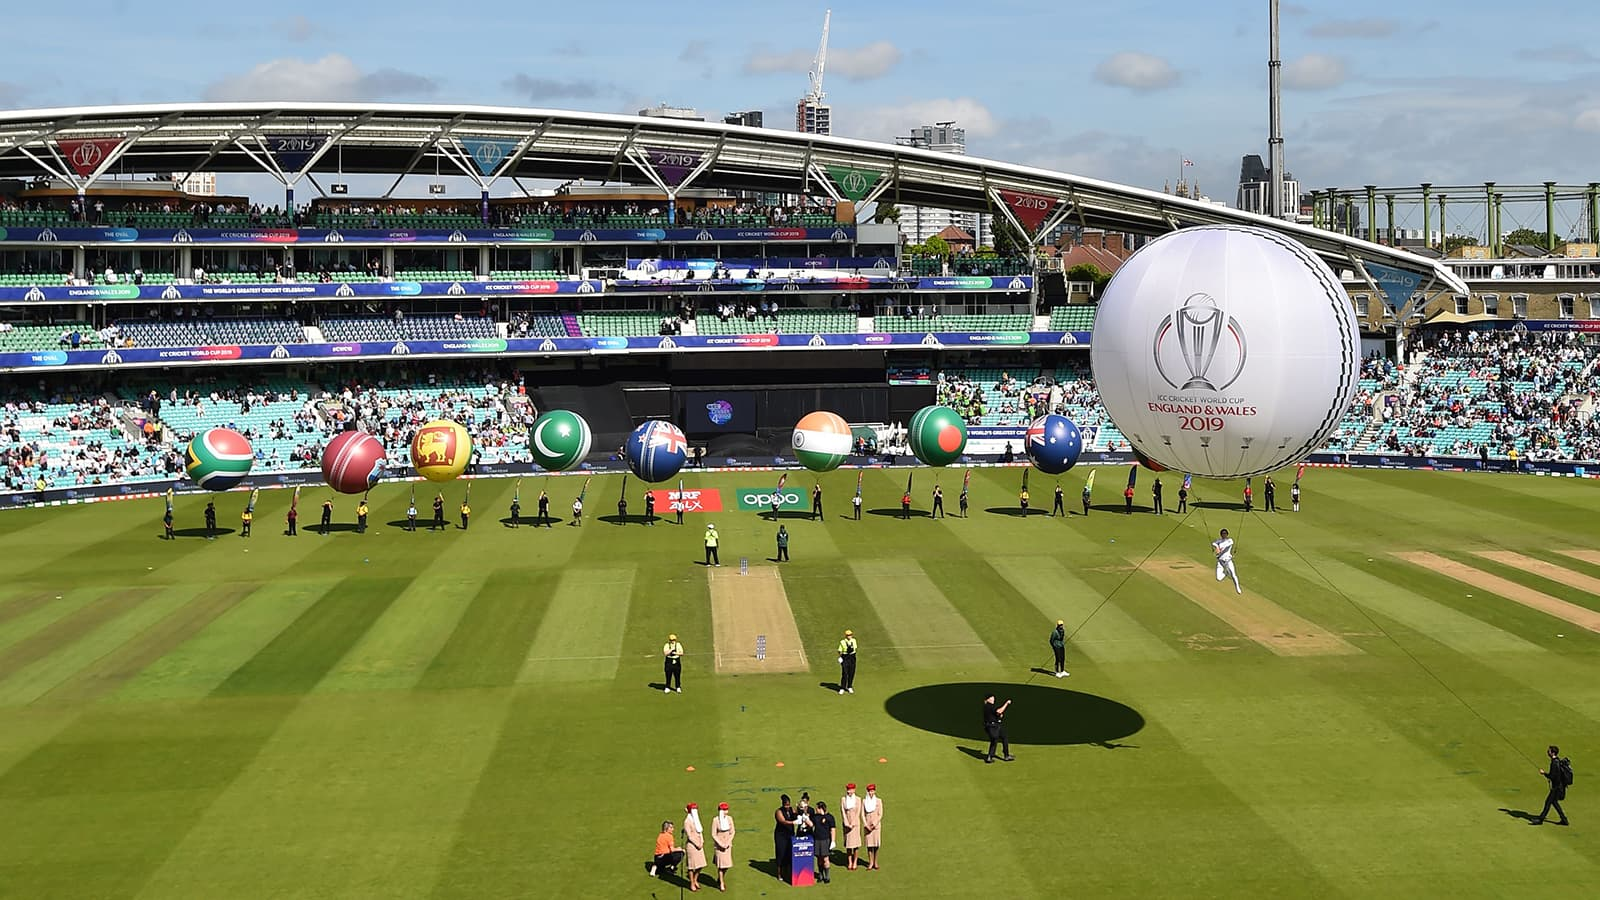 Balloons featuring the colours of the competing nations are displayed before the start of the 2019 Cricket World Cup group stage match between England and South Africa at The Oval, London on May 30. — AFP